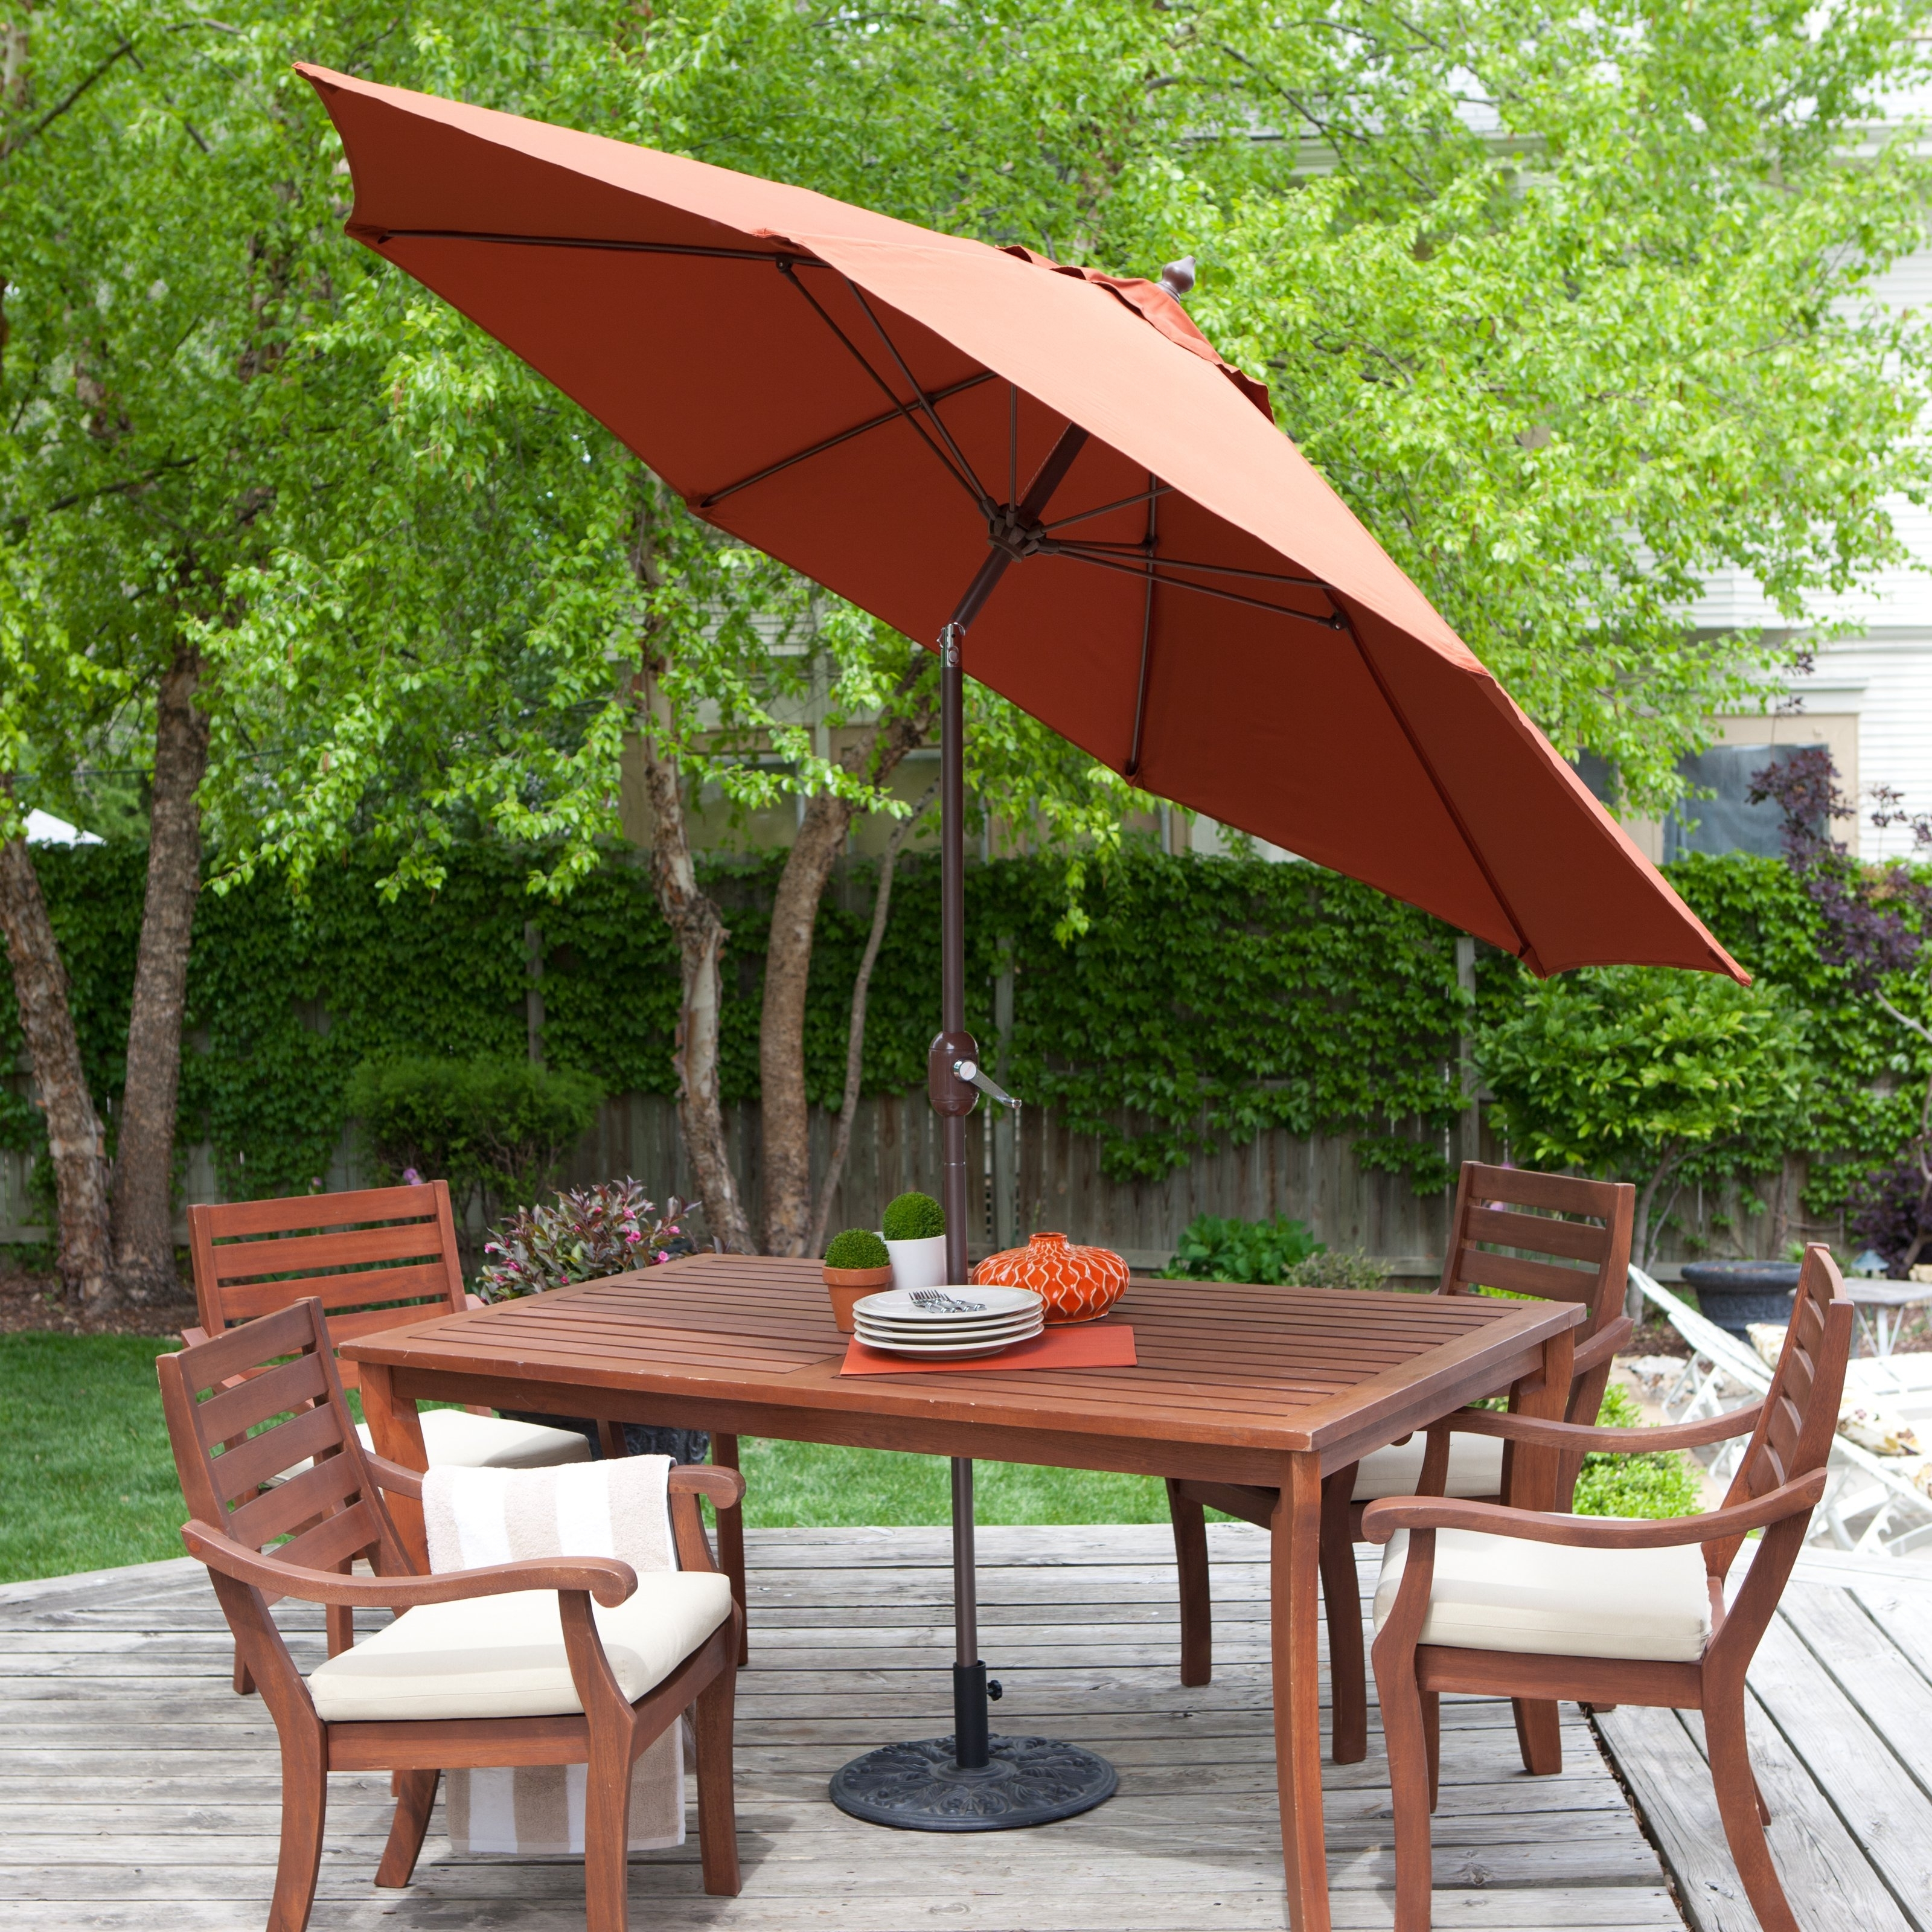 Galtech Sunbrella 11 Ft. Maximum Shade Deluxe Aluminum Auto Tilt Intended For Well Known Deluxe Patio Umbrellas (Gallery 4 of 20)